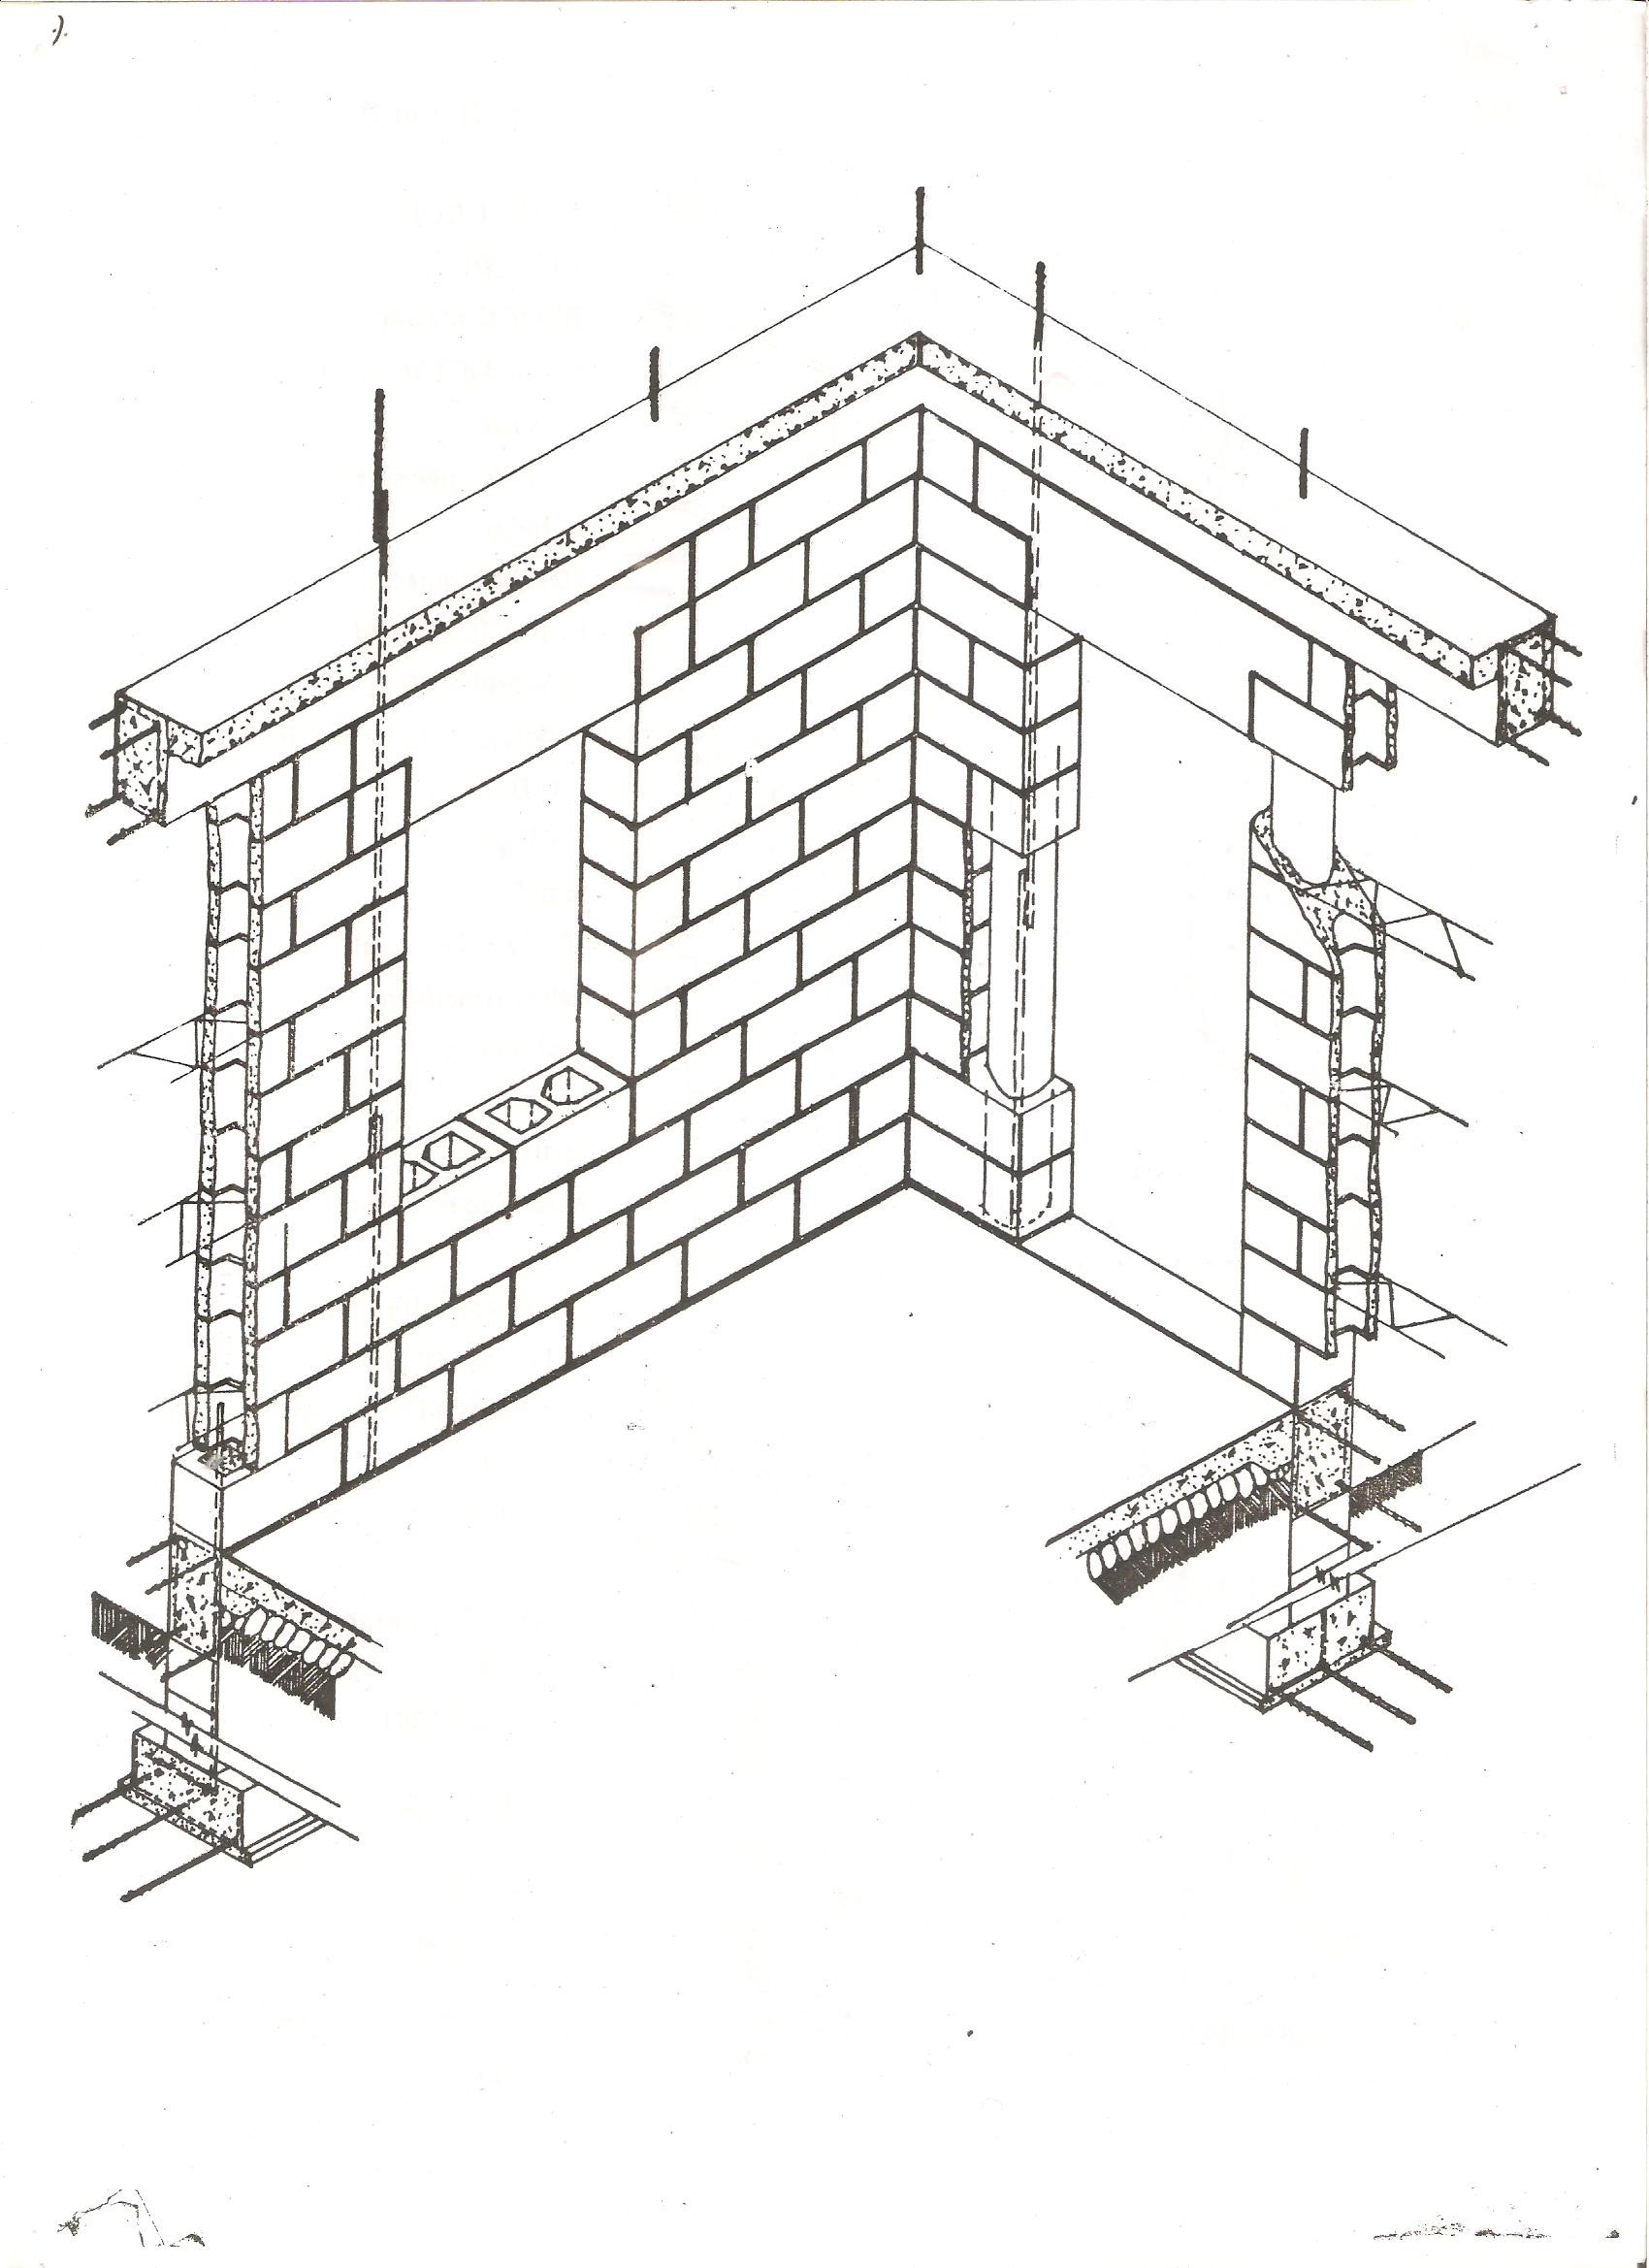 What are Reinforced Concrete Blocks or R.C.B's